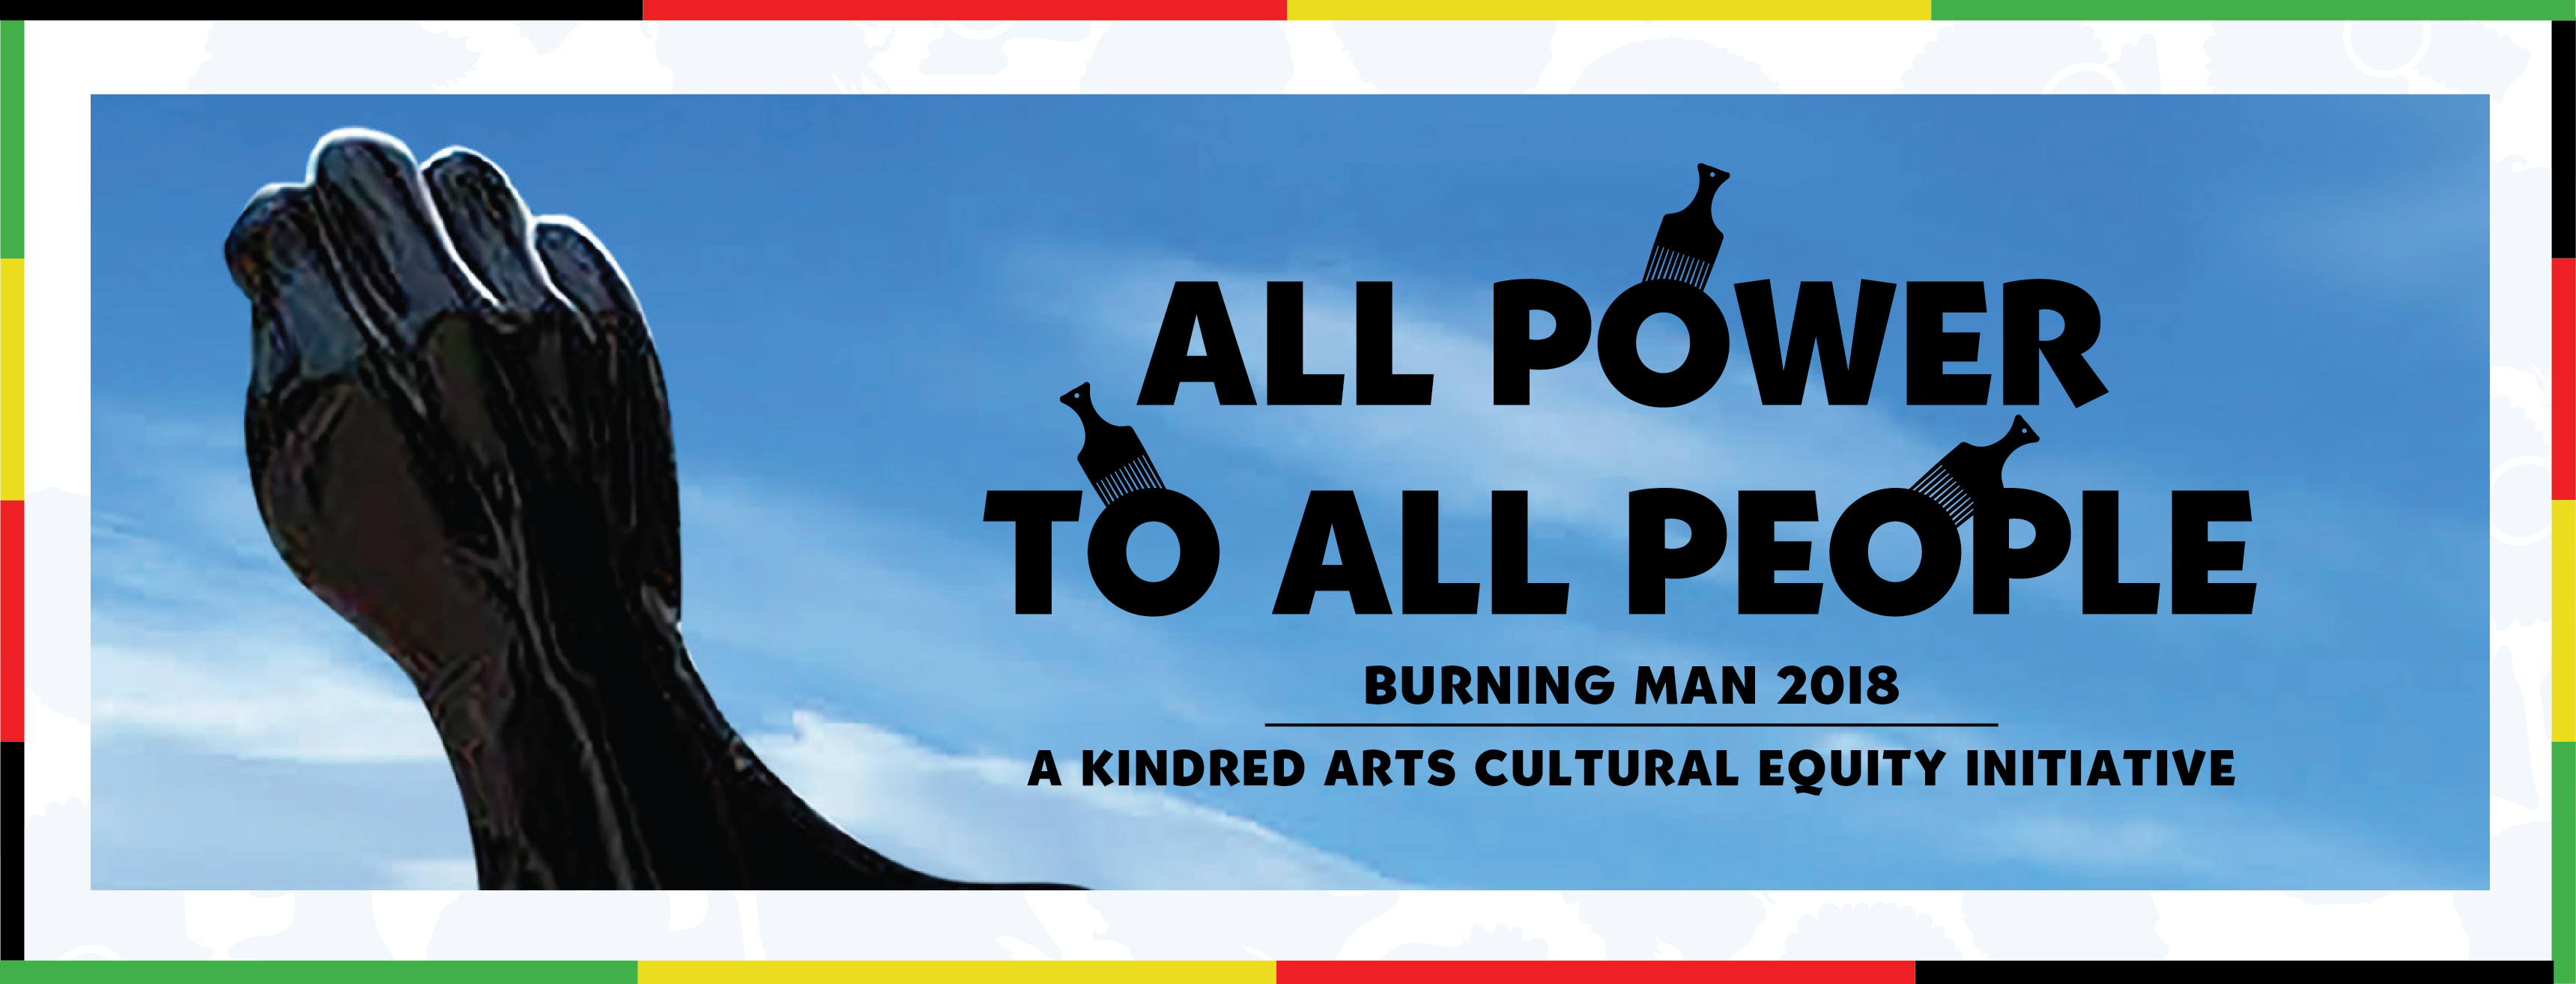 All power to all people logo